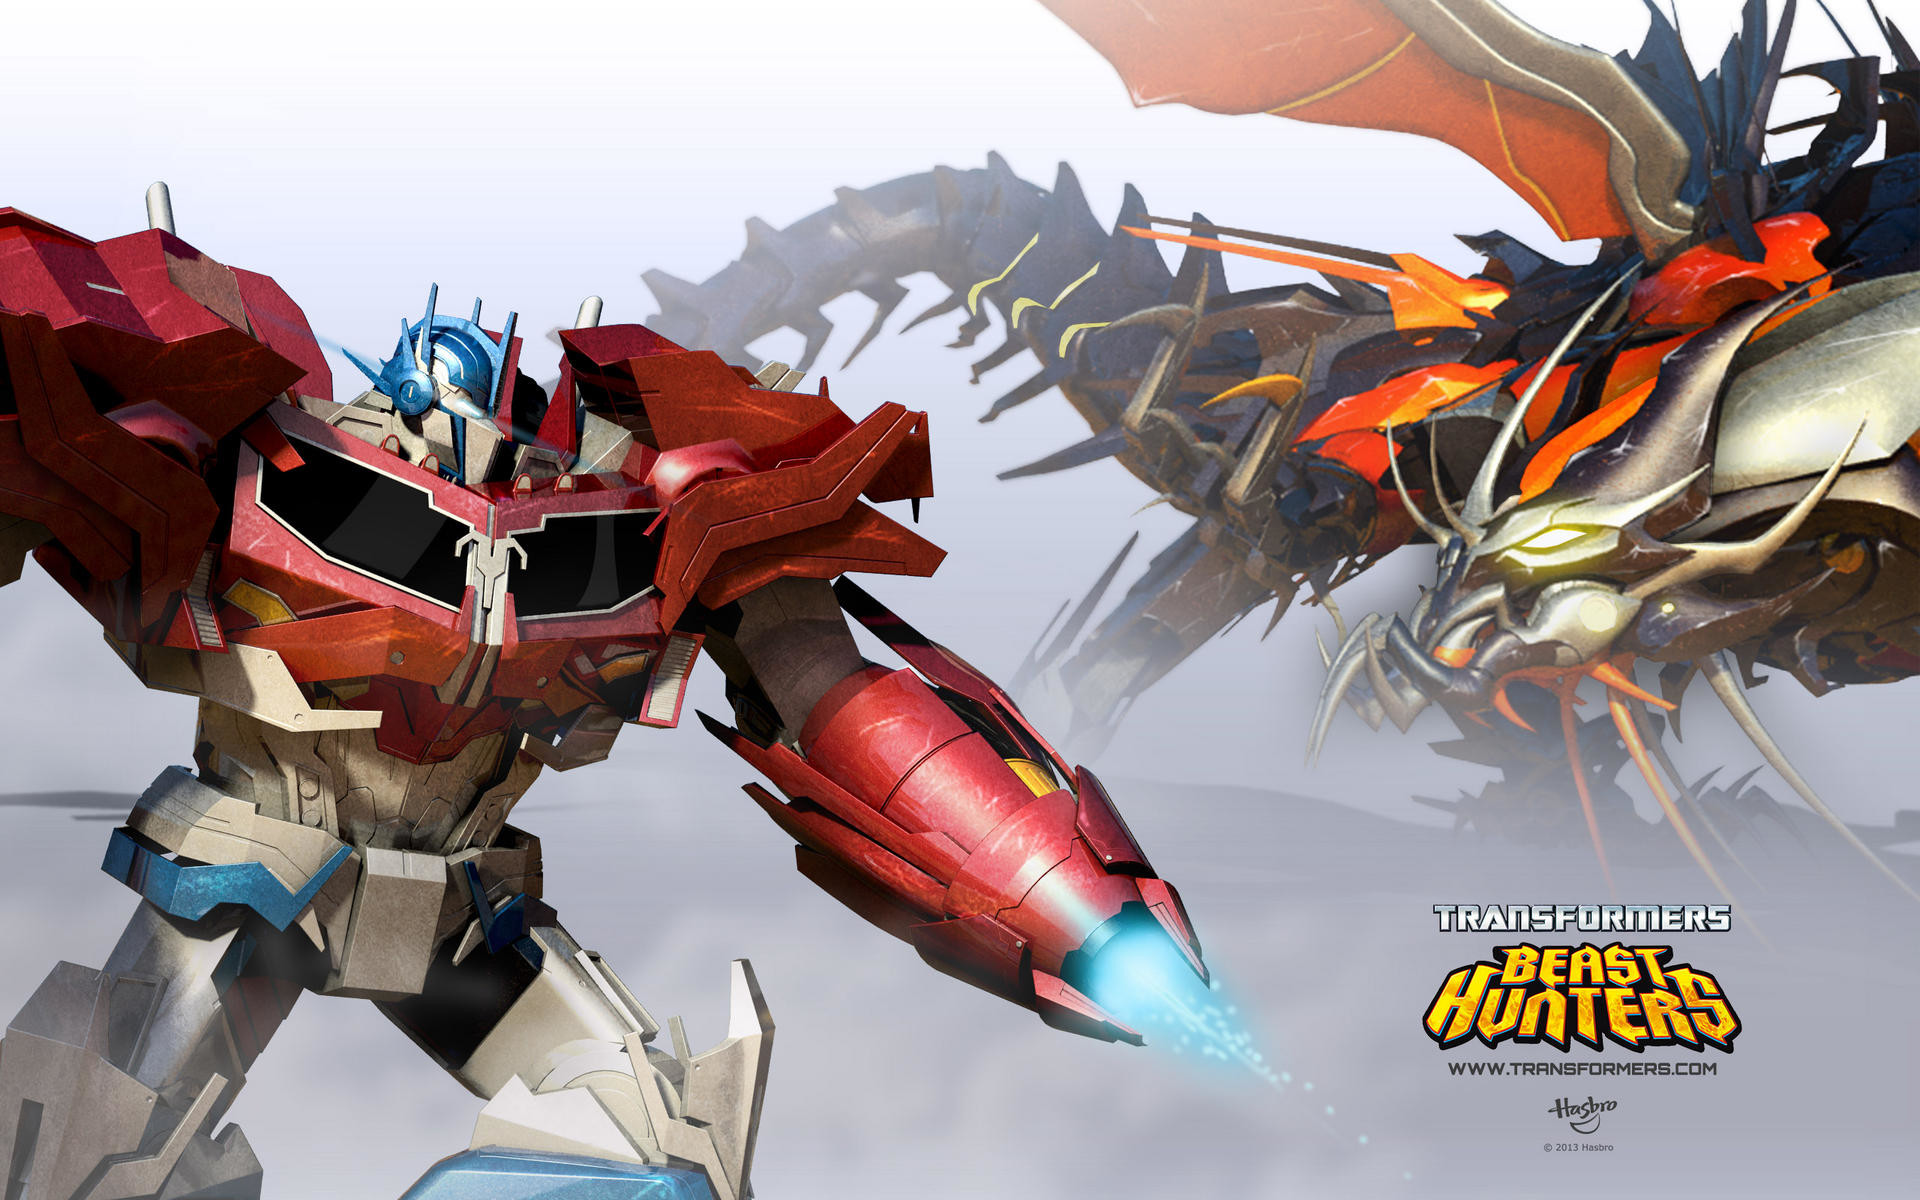 Transformers Fall Of Cybertron Wallpaper 1920x1080 Wallpaper Transformers Prime 61 Images